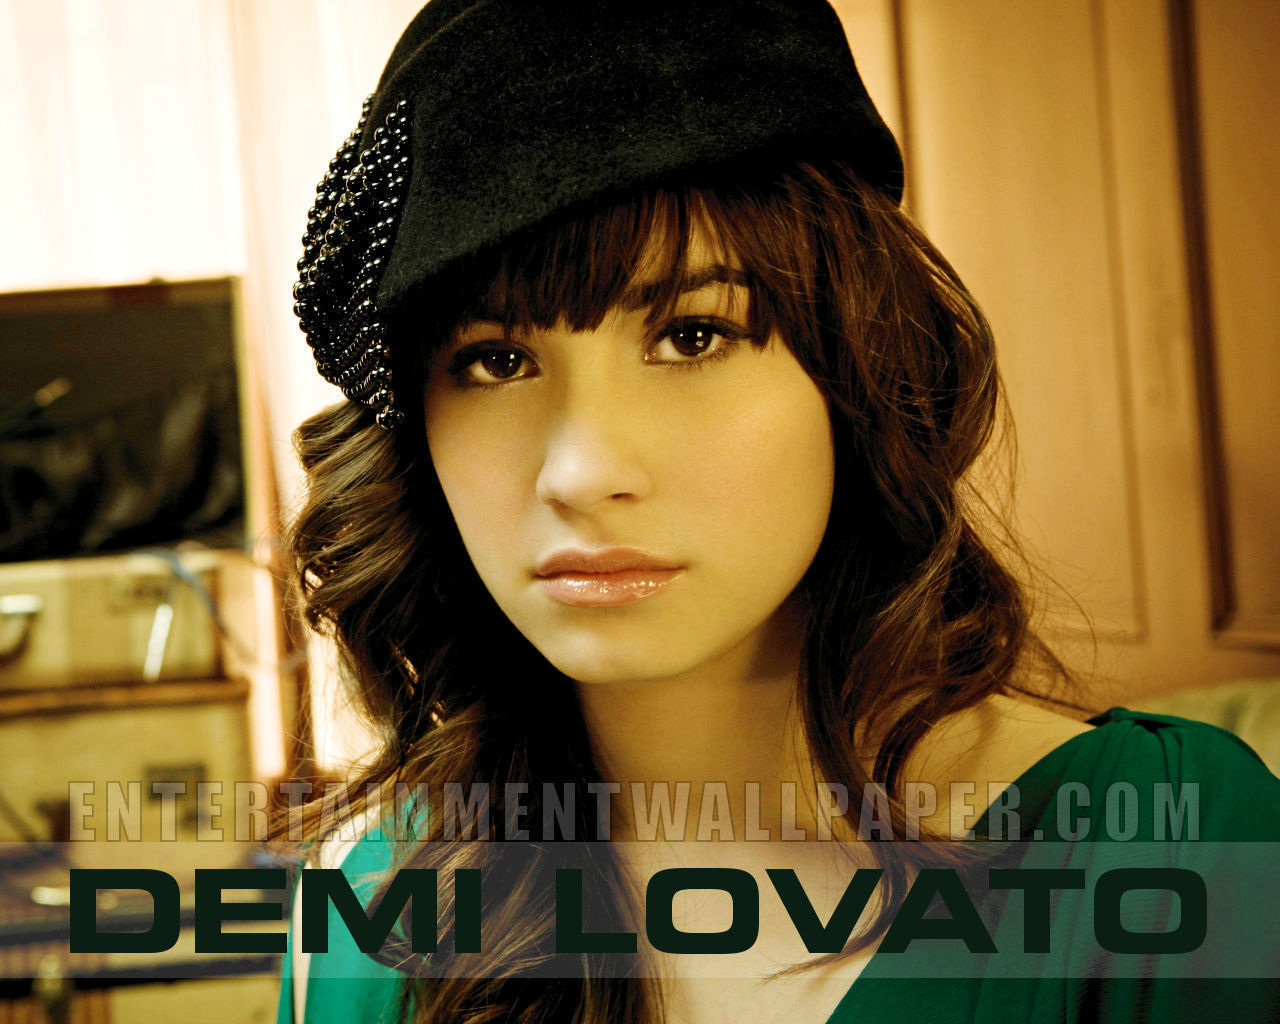 People demi lovato Celebrity HD Wallpaper